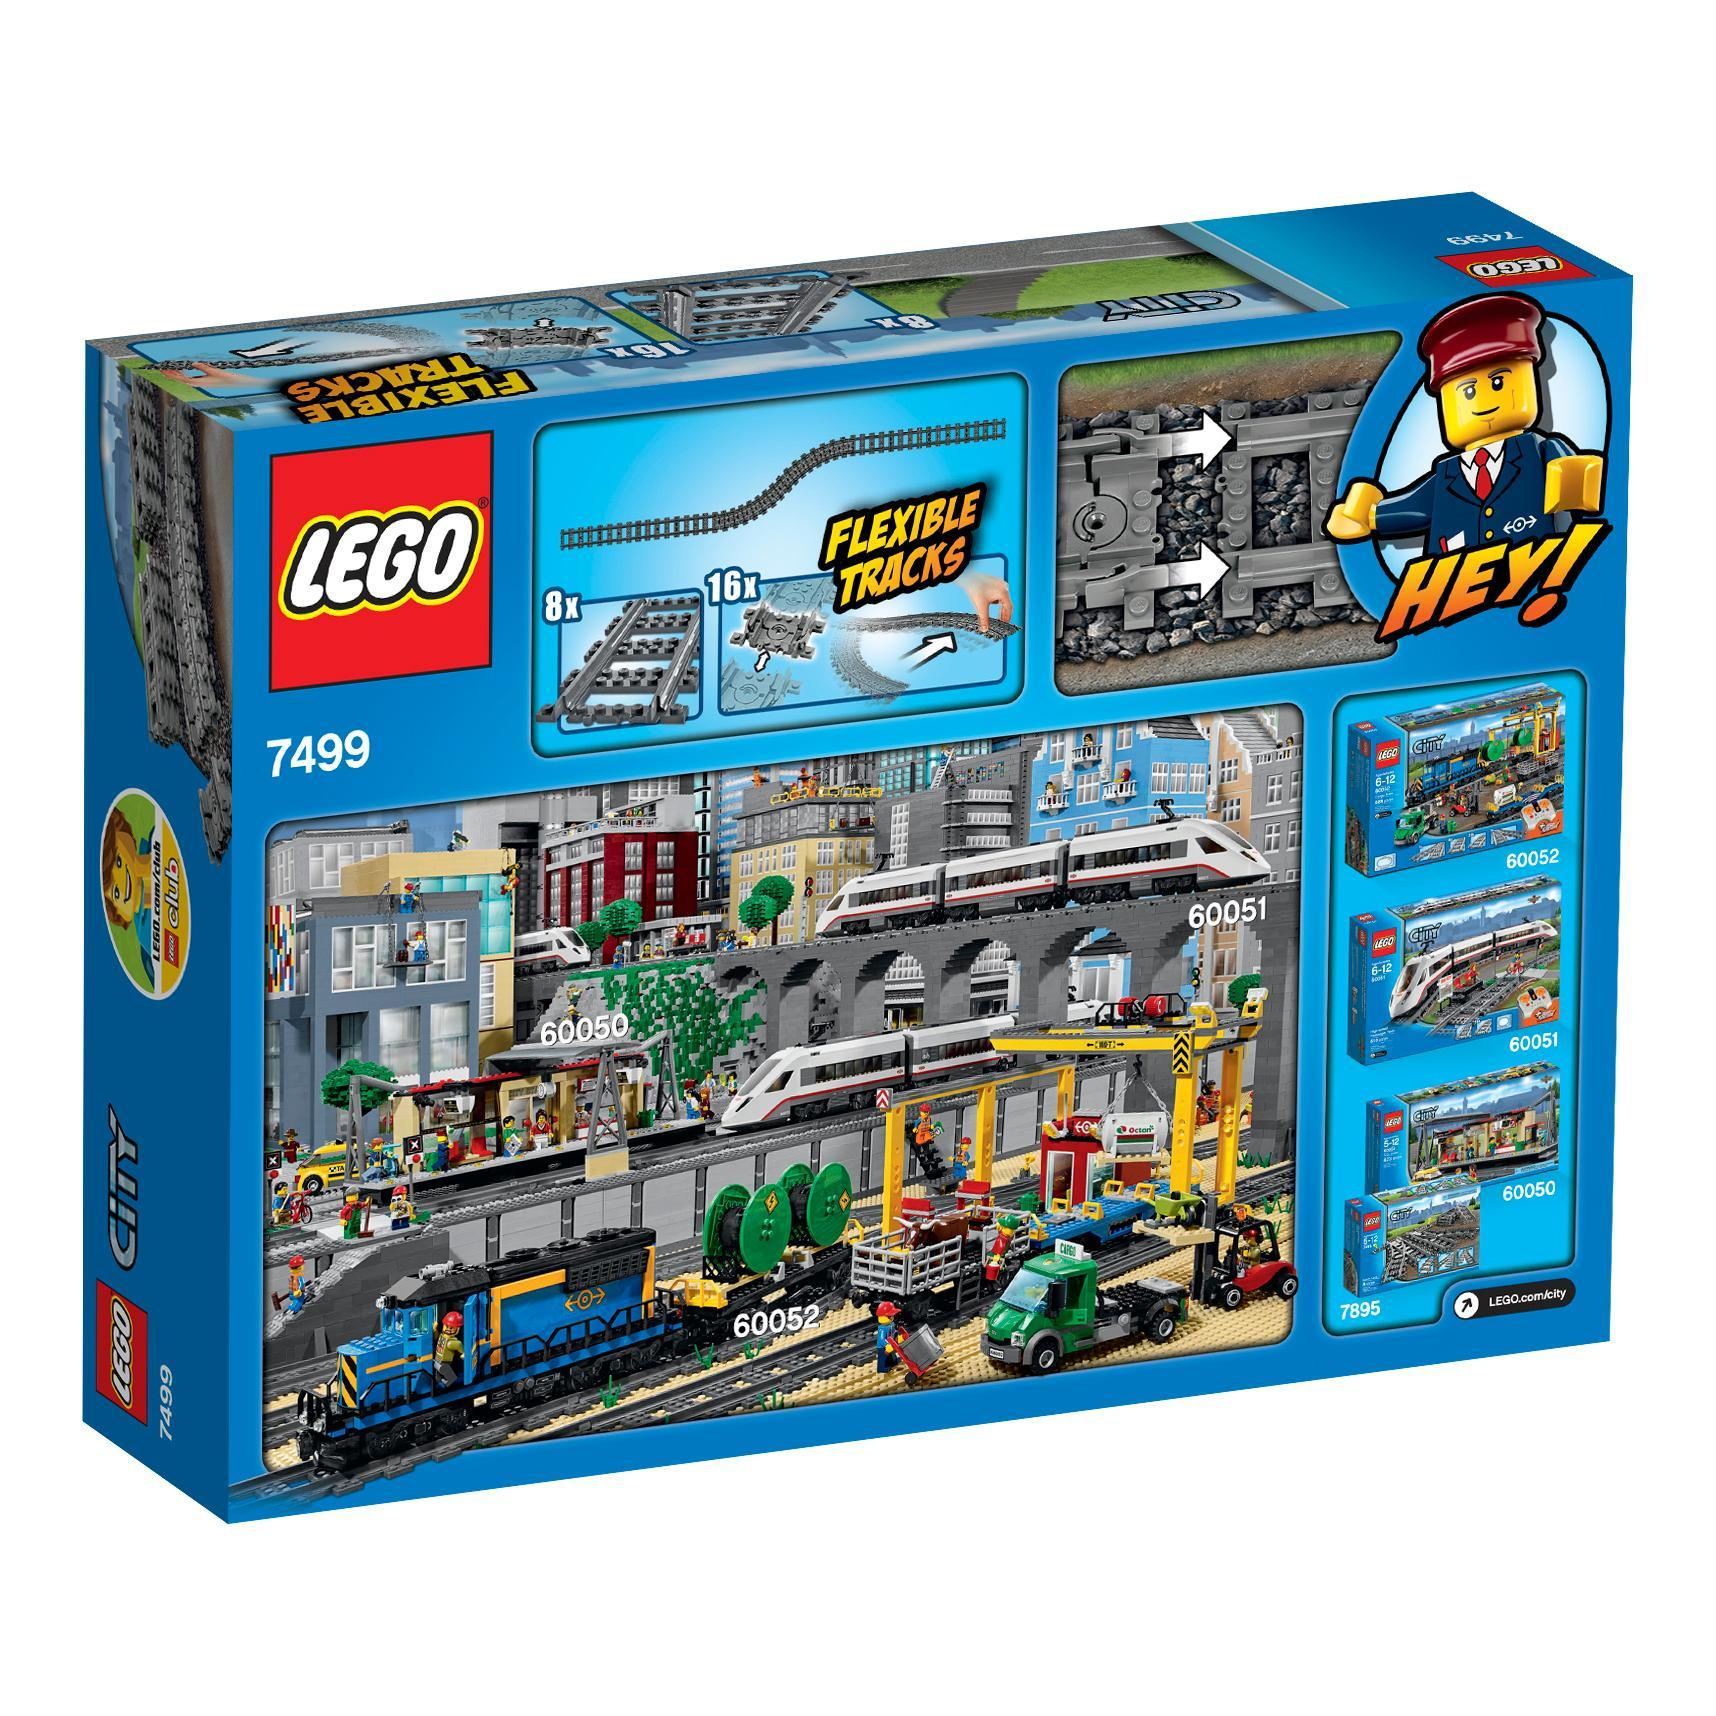 lego city rails flexibles 7499 jeu de construction jeux et jouets. Black Bedroom Furniture Sets. Home Design Ideas